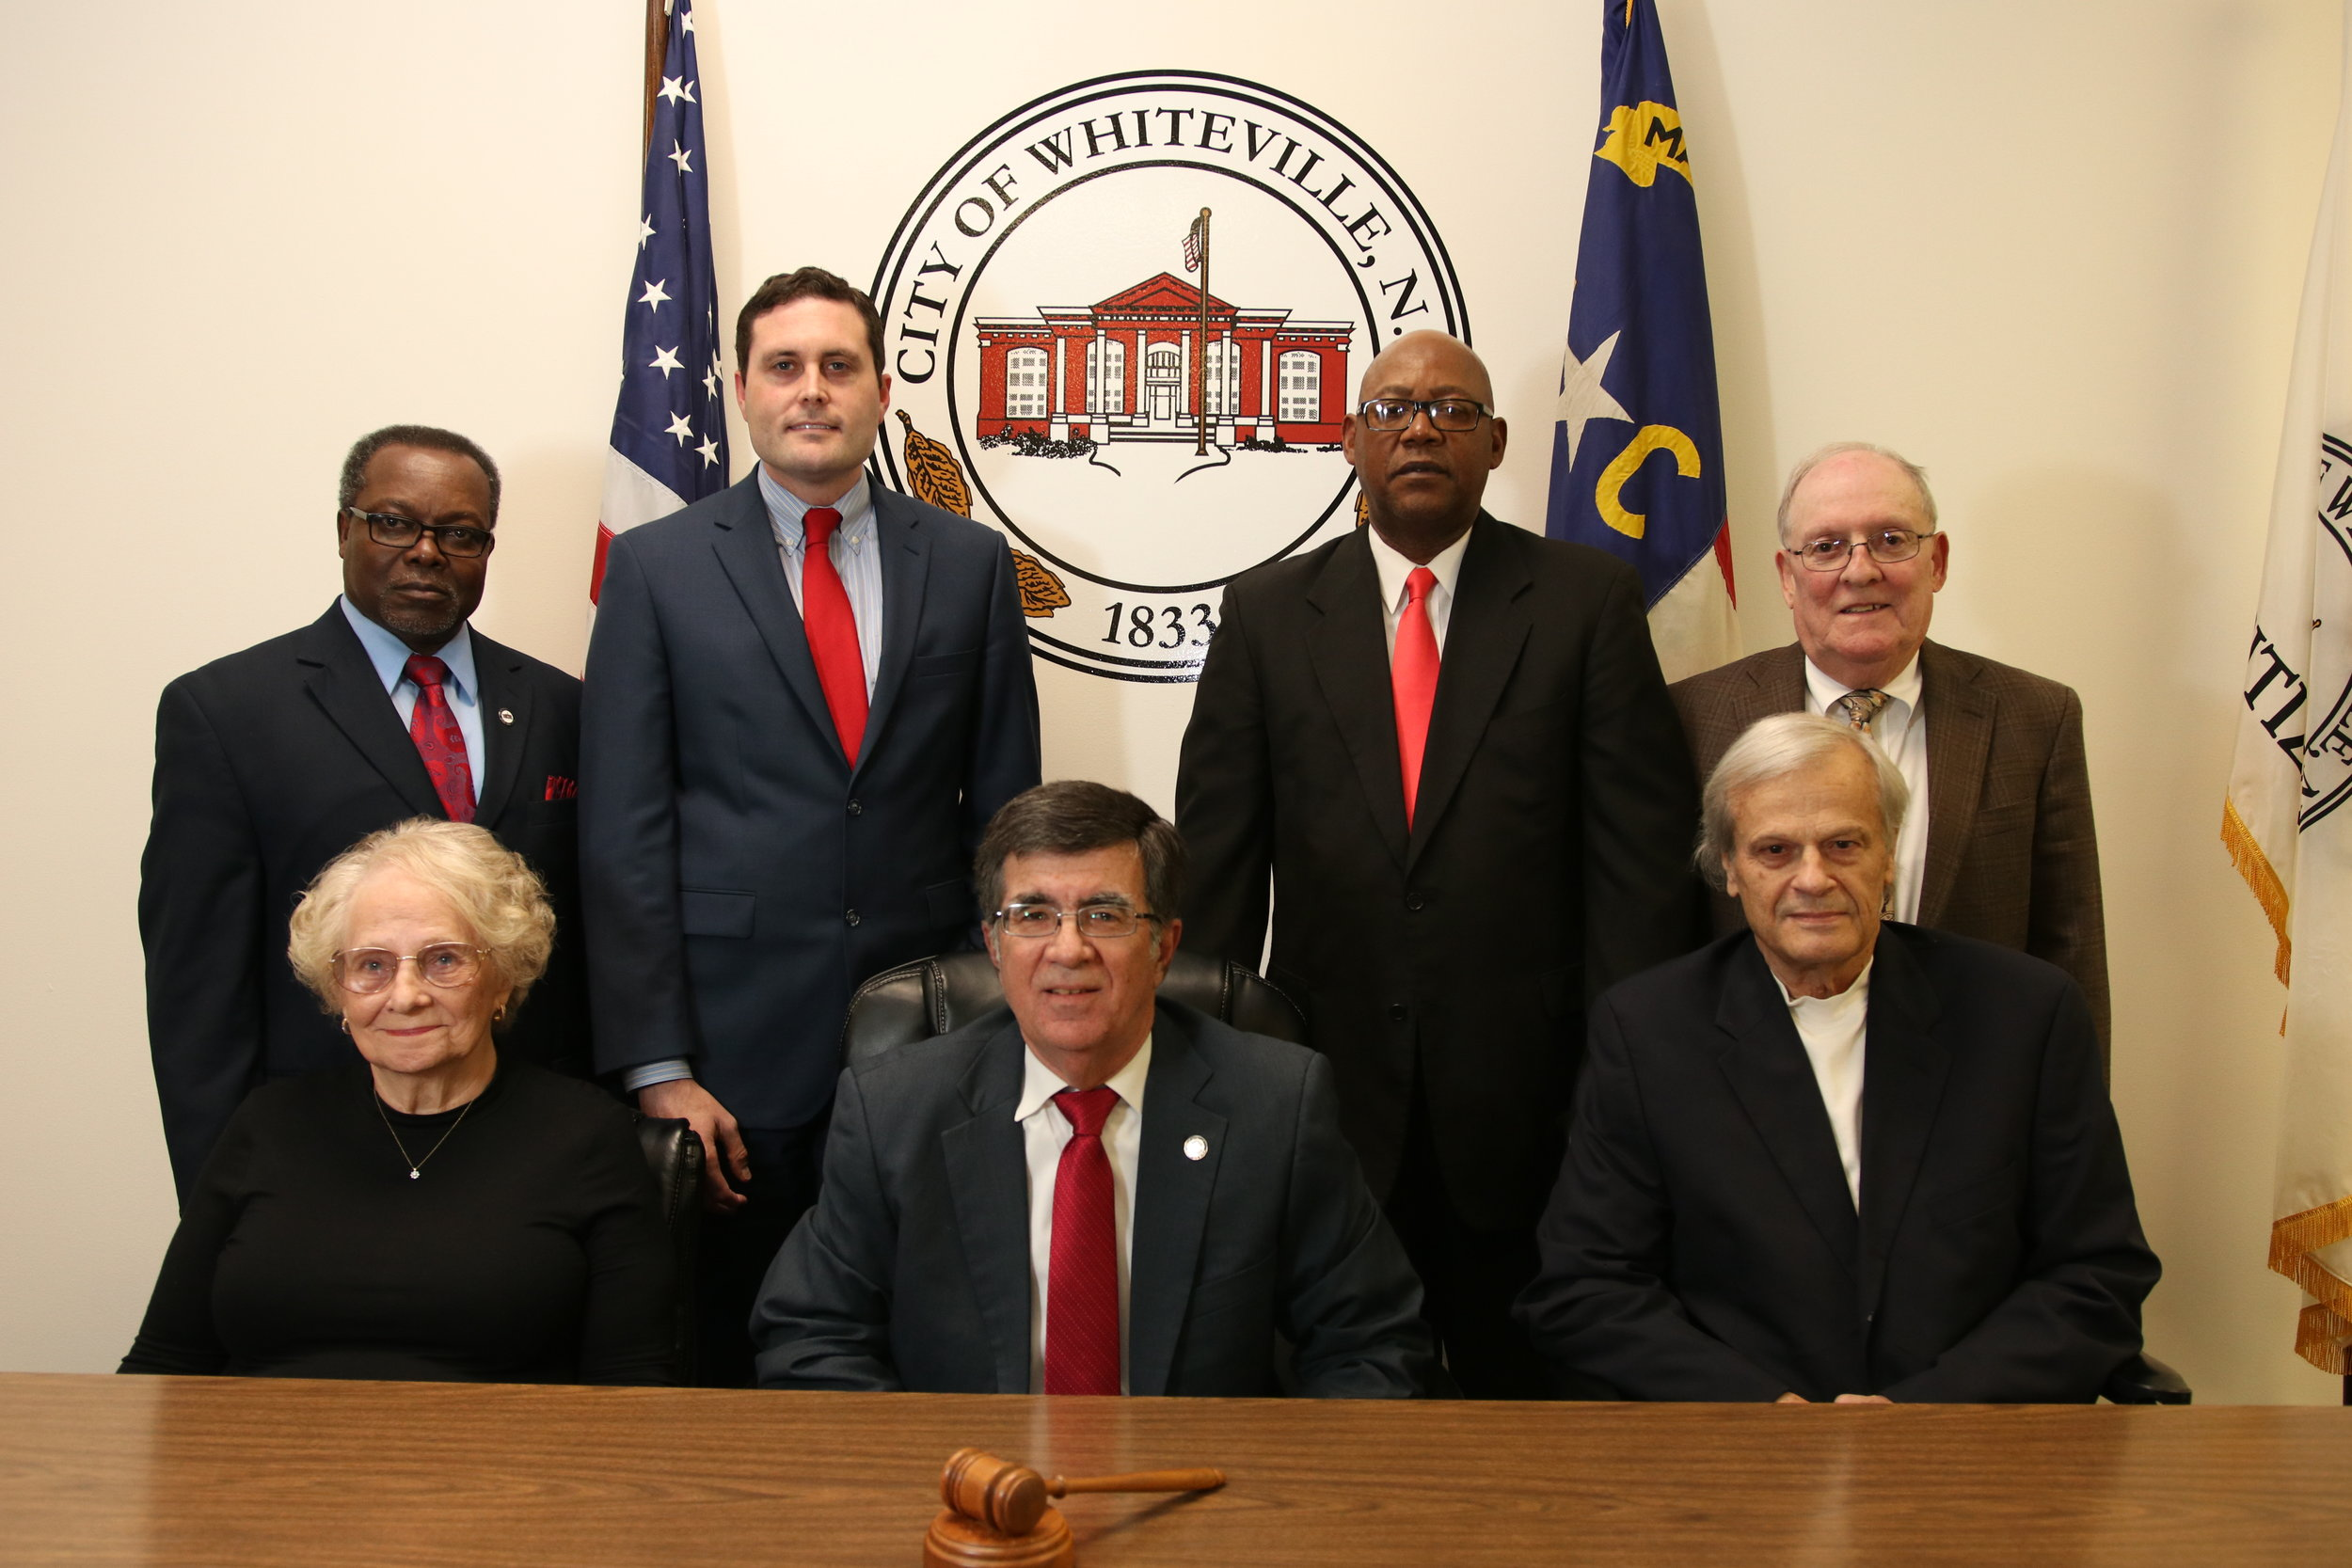 Whiteville City Council - Seated left to right: Sara Thompson, Mayor Terry Mann, Tim Blackmon. Standing left to right: Robert Leder, Justin Smitn, Jimmy Clarida and Tim Collier.